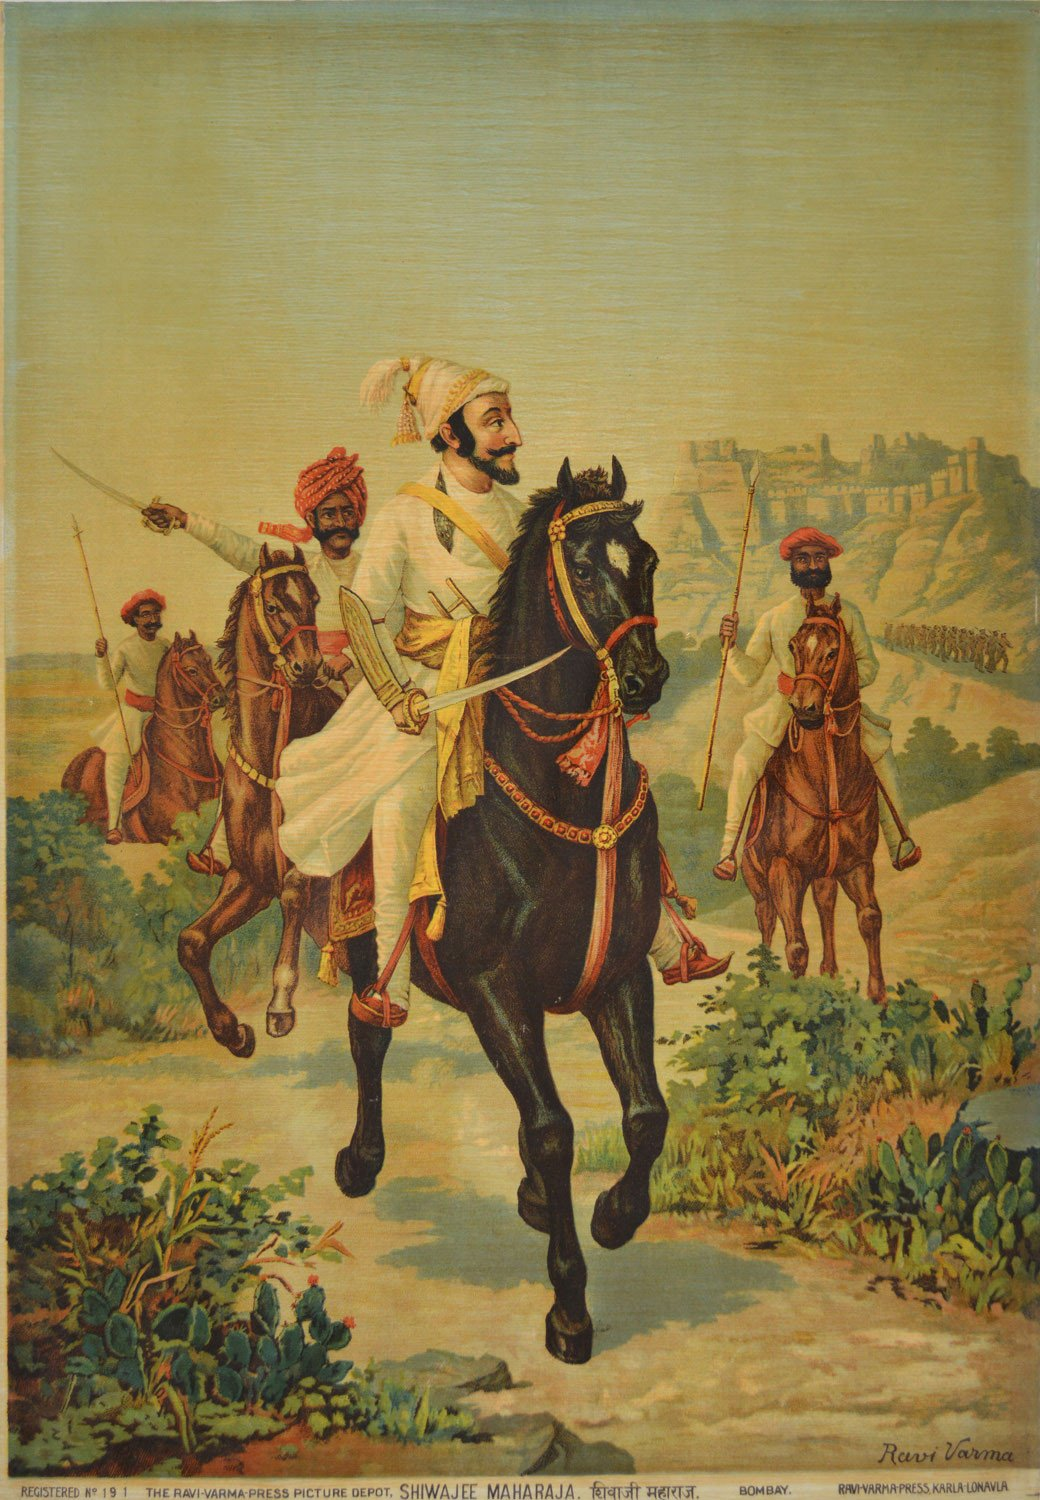 Hd wallpapers of chhatrapati shivaji maharaj